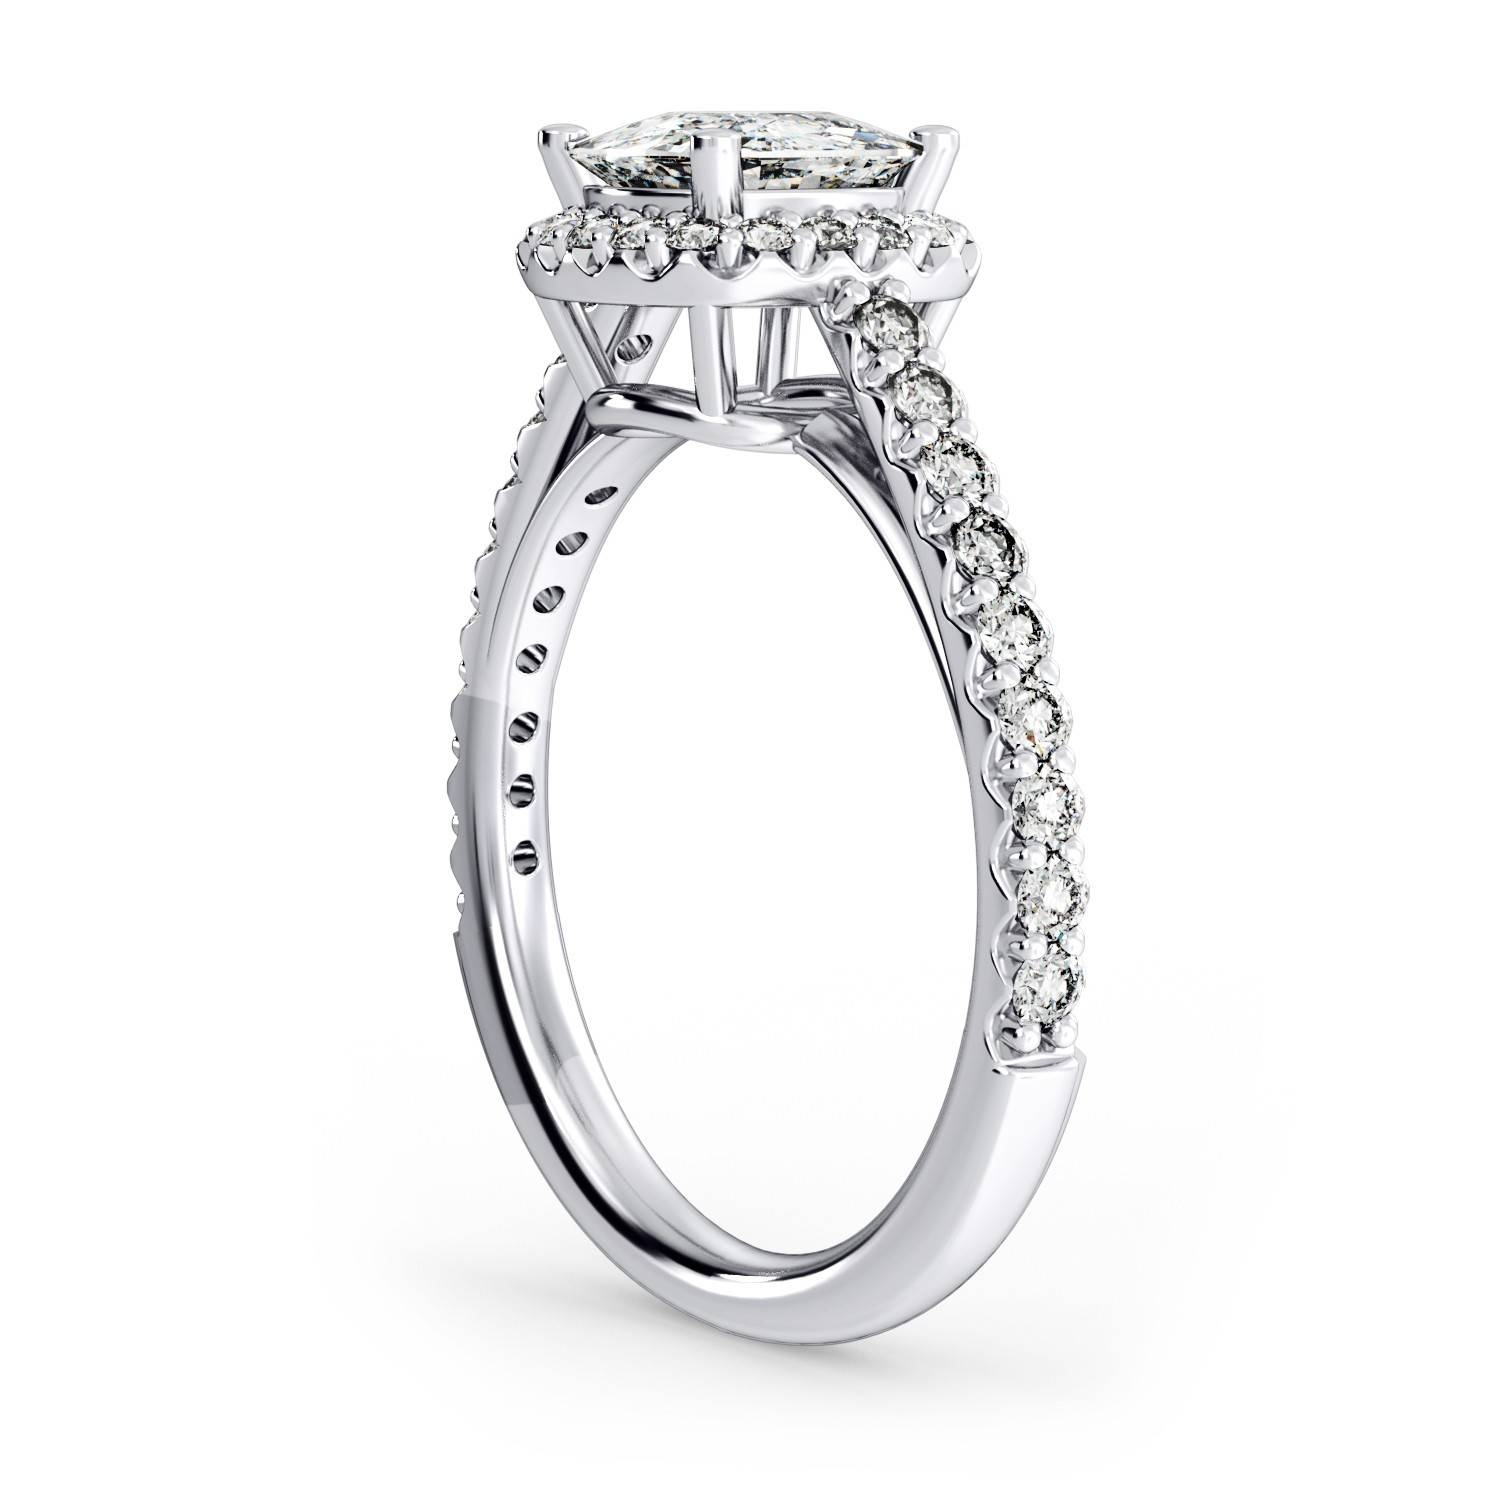 Ring Chicago Wedding Rings Los Angeles With View